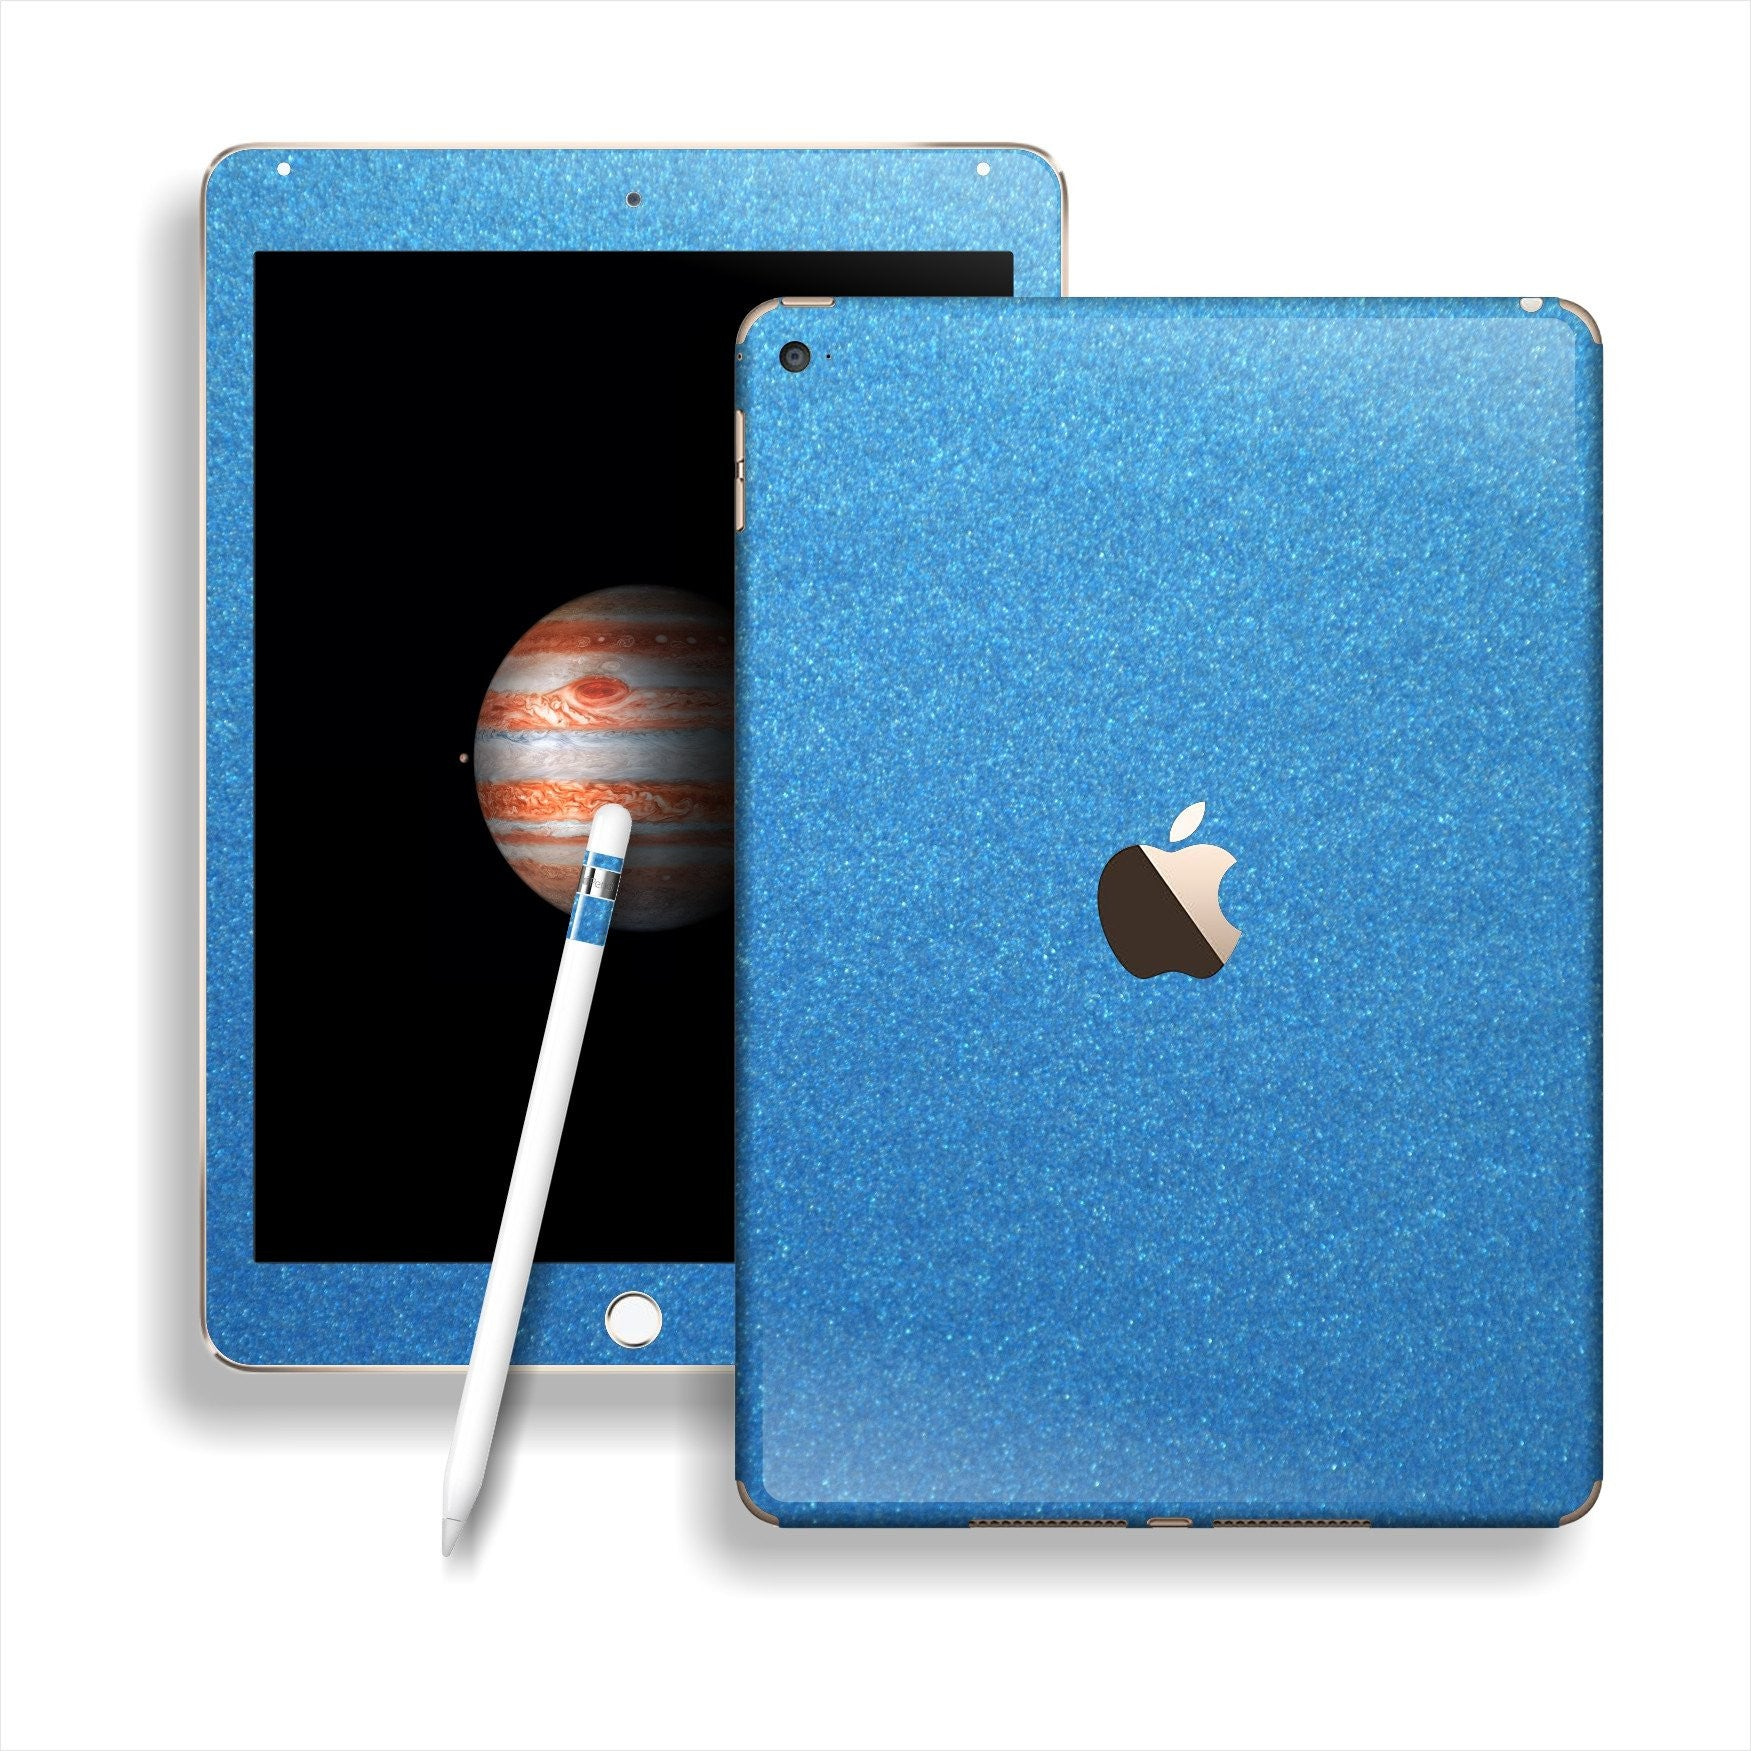 iPad PRO Glossy Azure Blue Metallic Skin Wrap Sticker Decal Cover Protector by EasySkinz